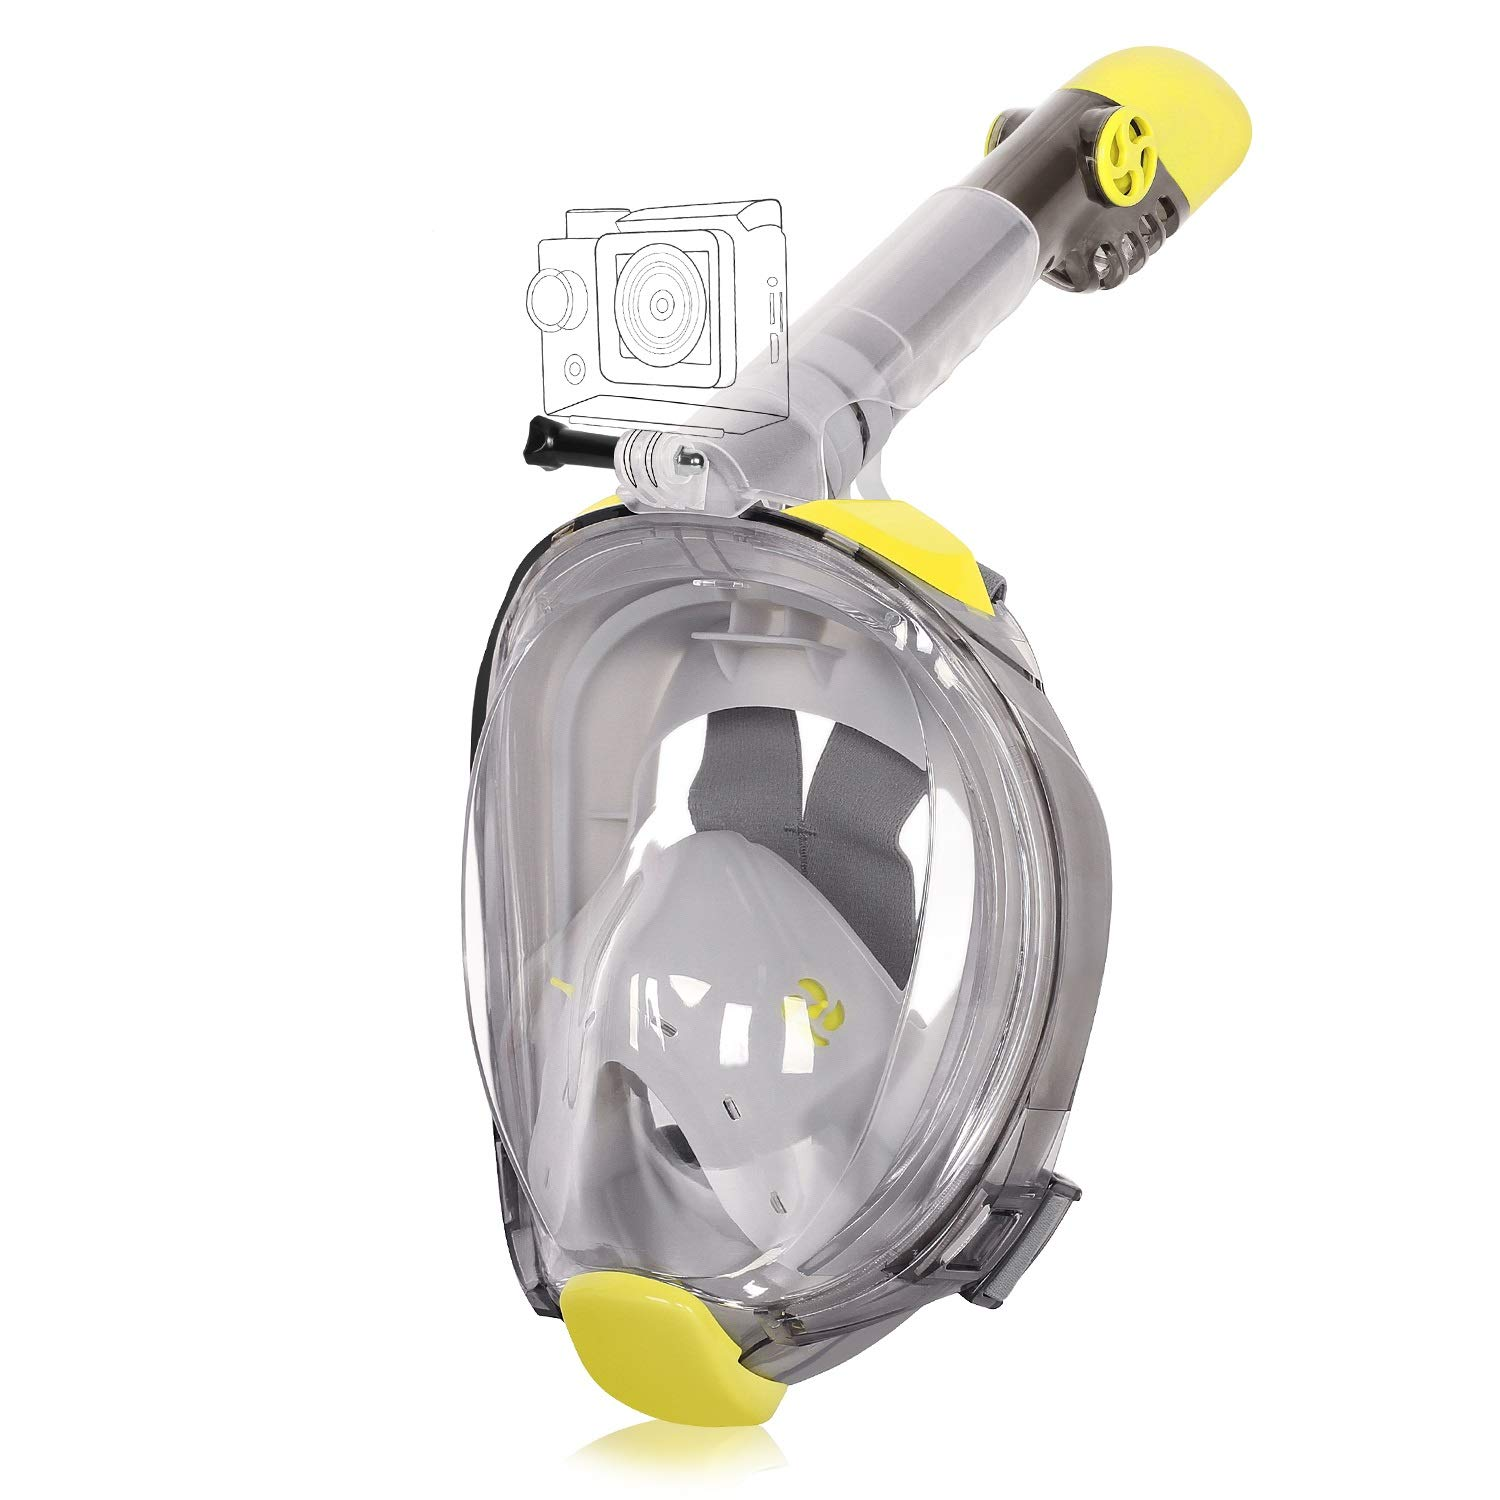 Unigear Full Face Snorkel Mask [2019 Safety Upgraded Version] - Panoramic 180° View with Handler Detachable Camera Mount, Anti-Fog Anti-Leak Free Breath Design (Yellow/Grey, Small/Medium) by Unigear